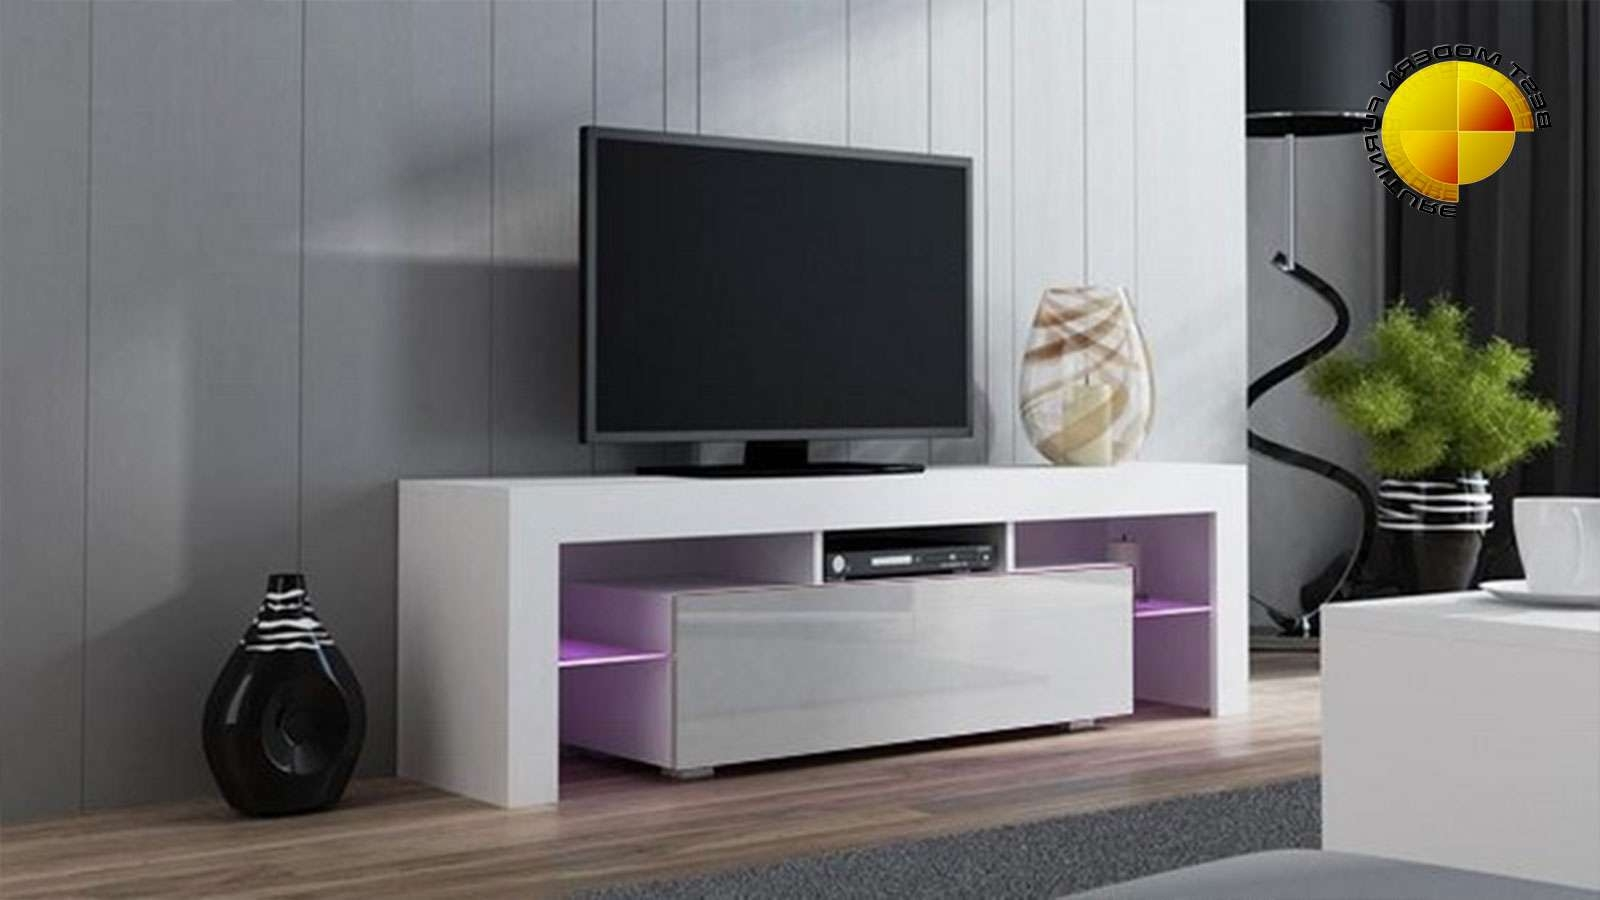 Modern Tv Stand 160Cm High Gloss Cabinet Rgb Led Lights White Unit Regarding High Gloss Tv Cabinets (View 16 of 20)